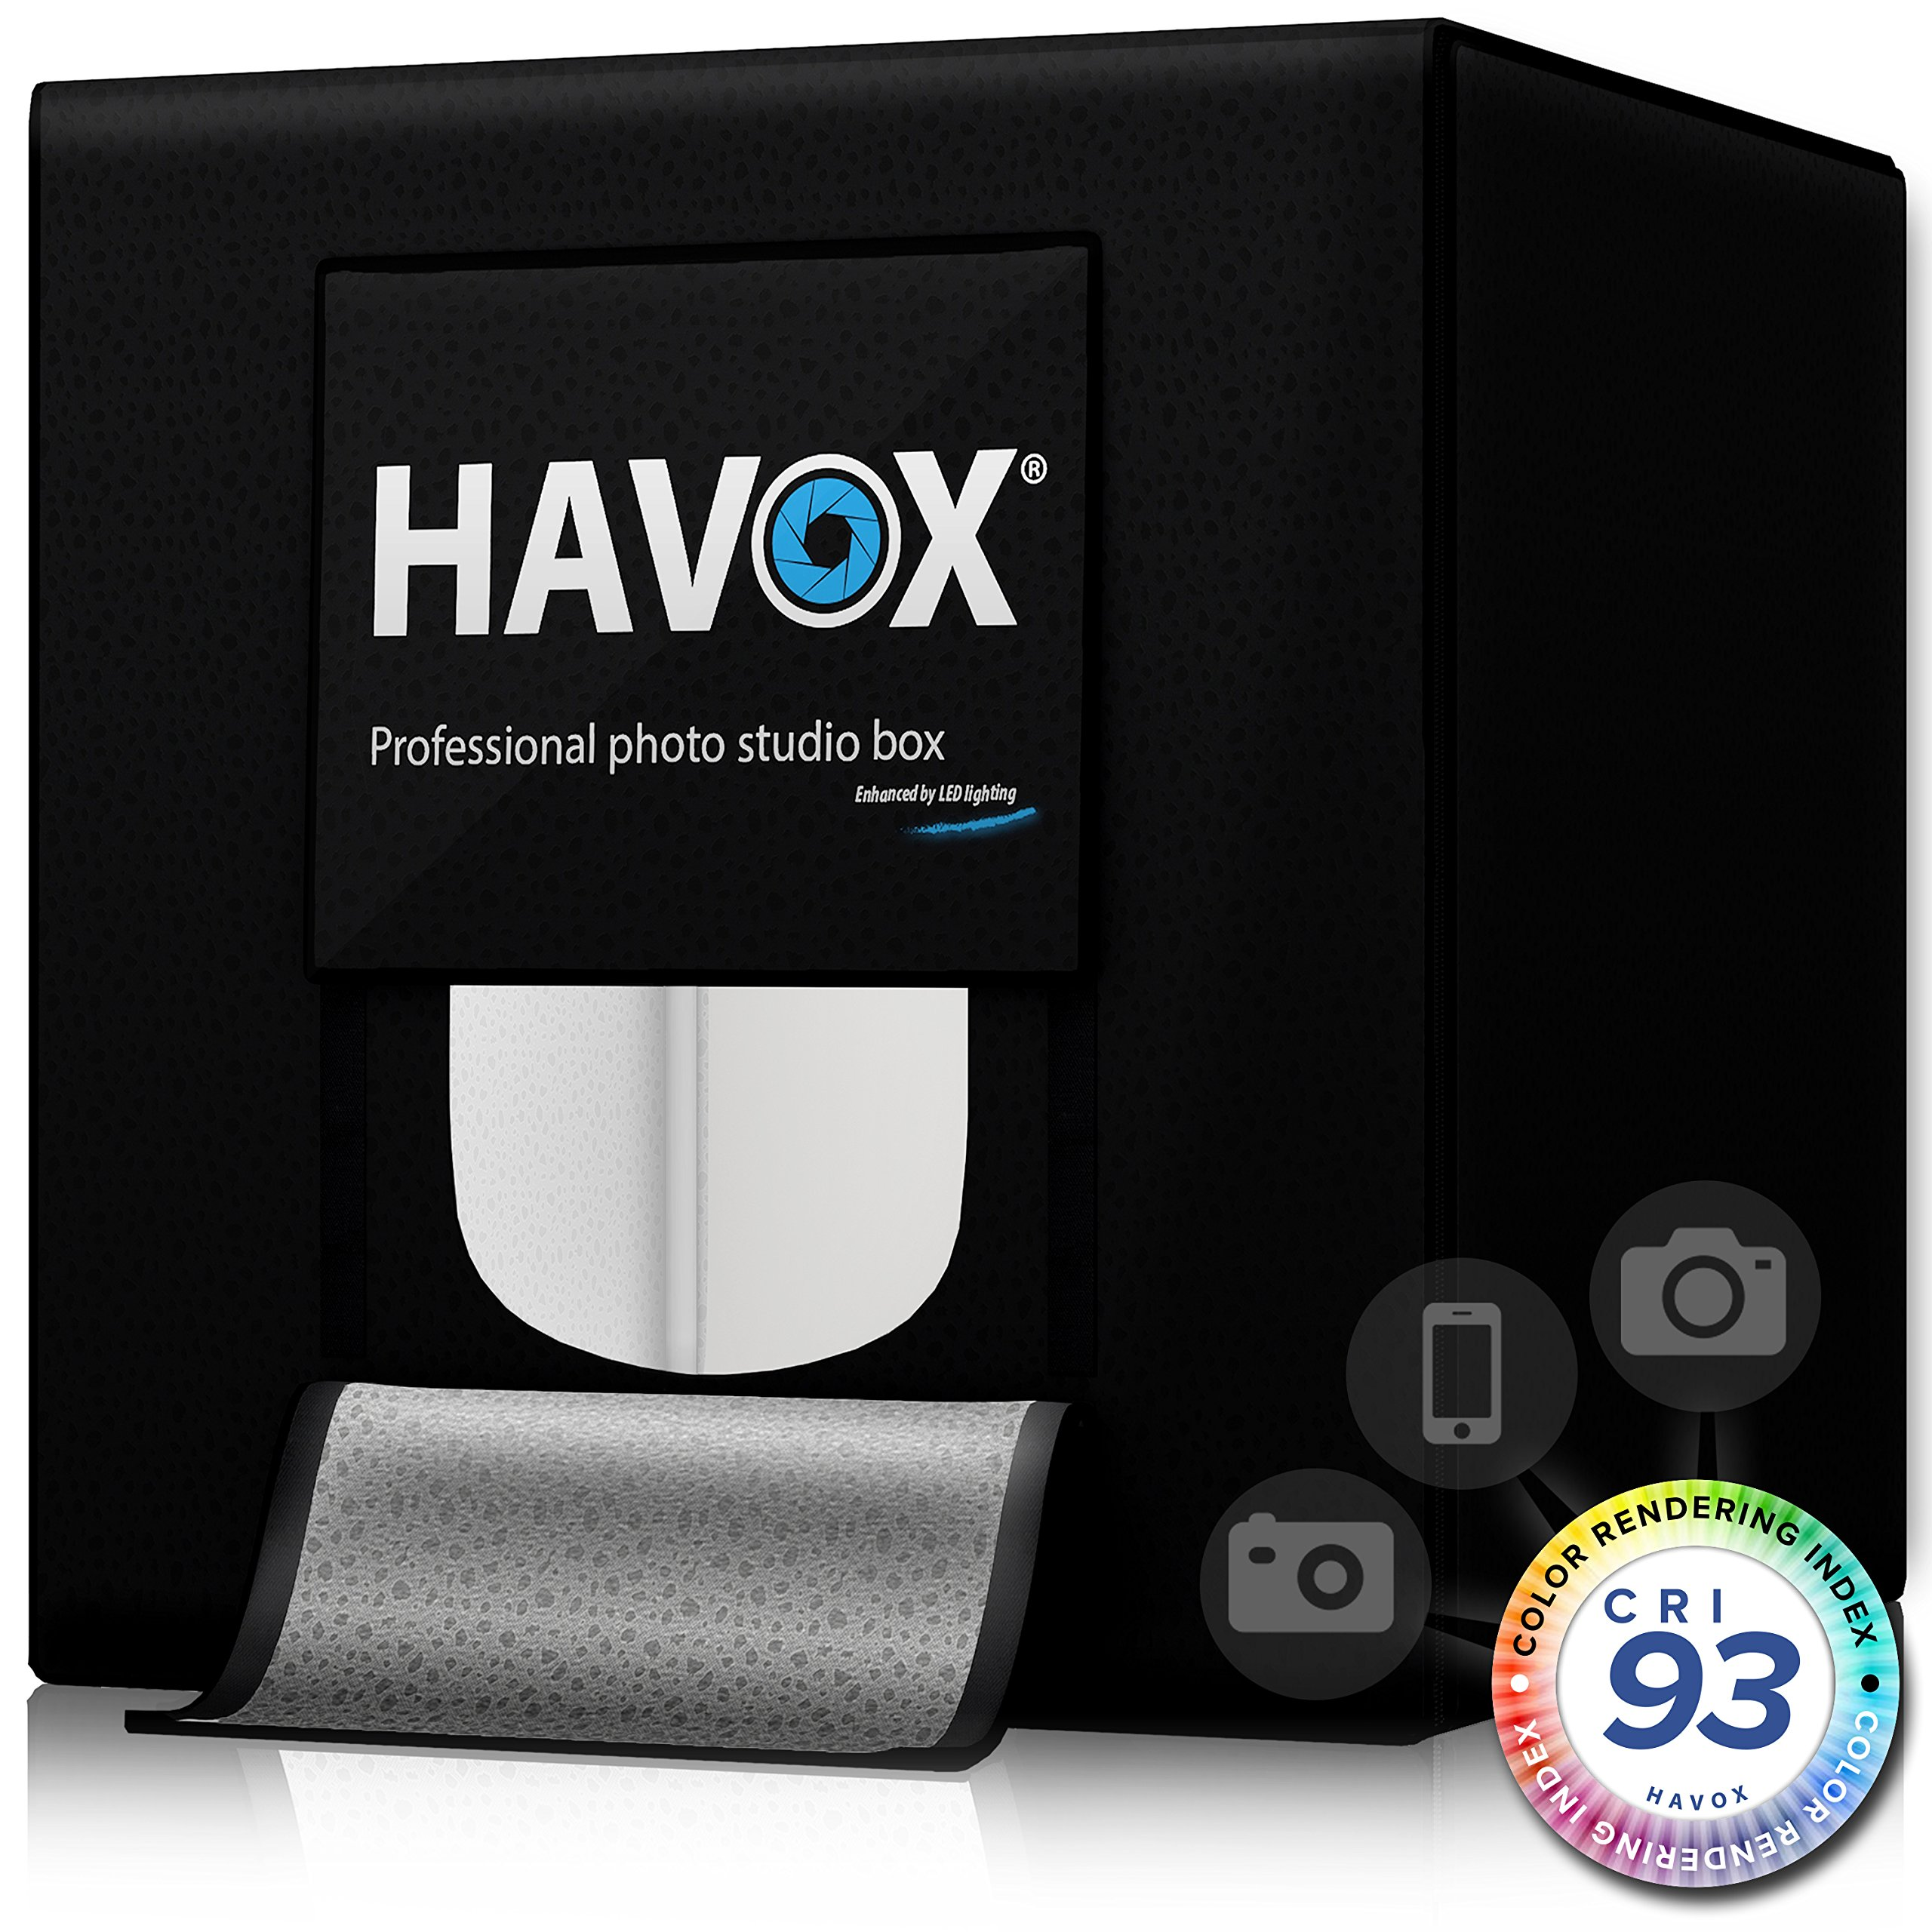 HAVOX - Photo Studio HPB-40D - Dimension 16''x16''x16'' - Super Bright Dimmable LED Lighting 5500k - 13,000 lumens - CRI 93 - Make Your Commercial Photos e-Commerce by HAVOX